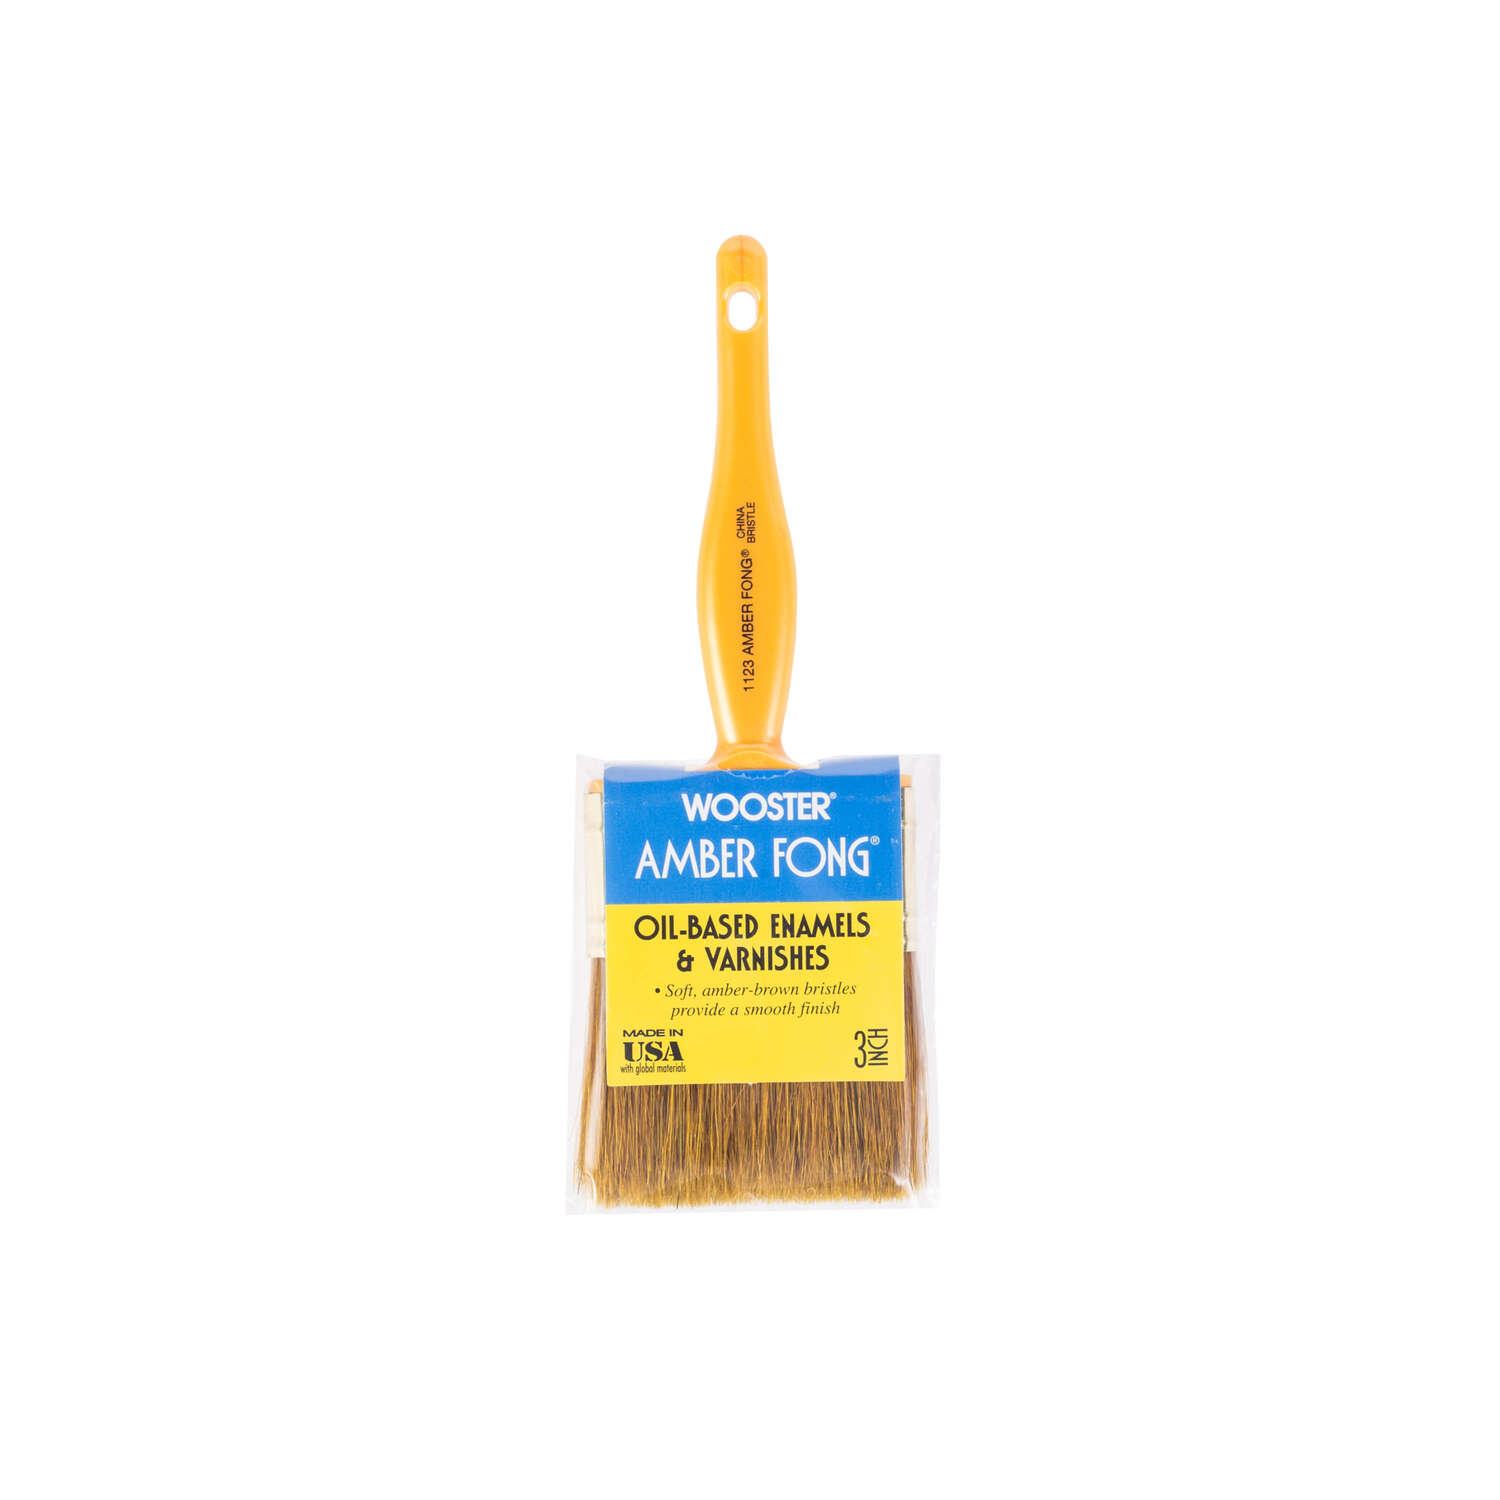 Wooster Amber Fong 3 in. W Flat Paint Brush